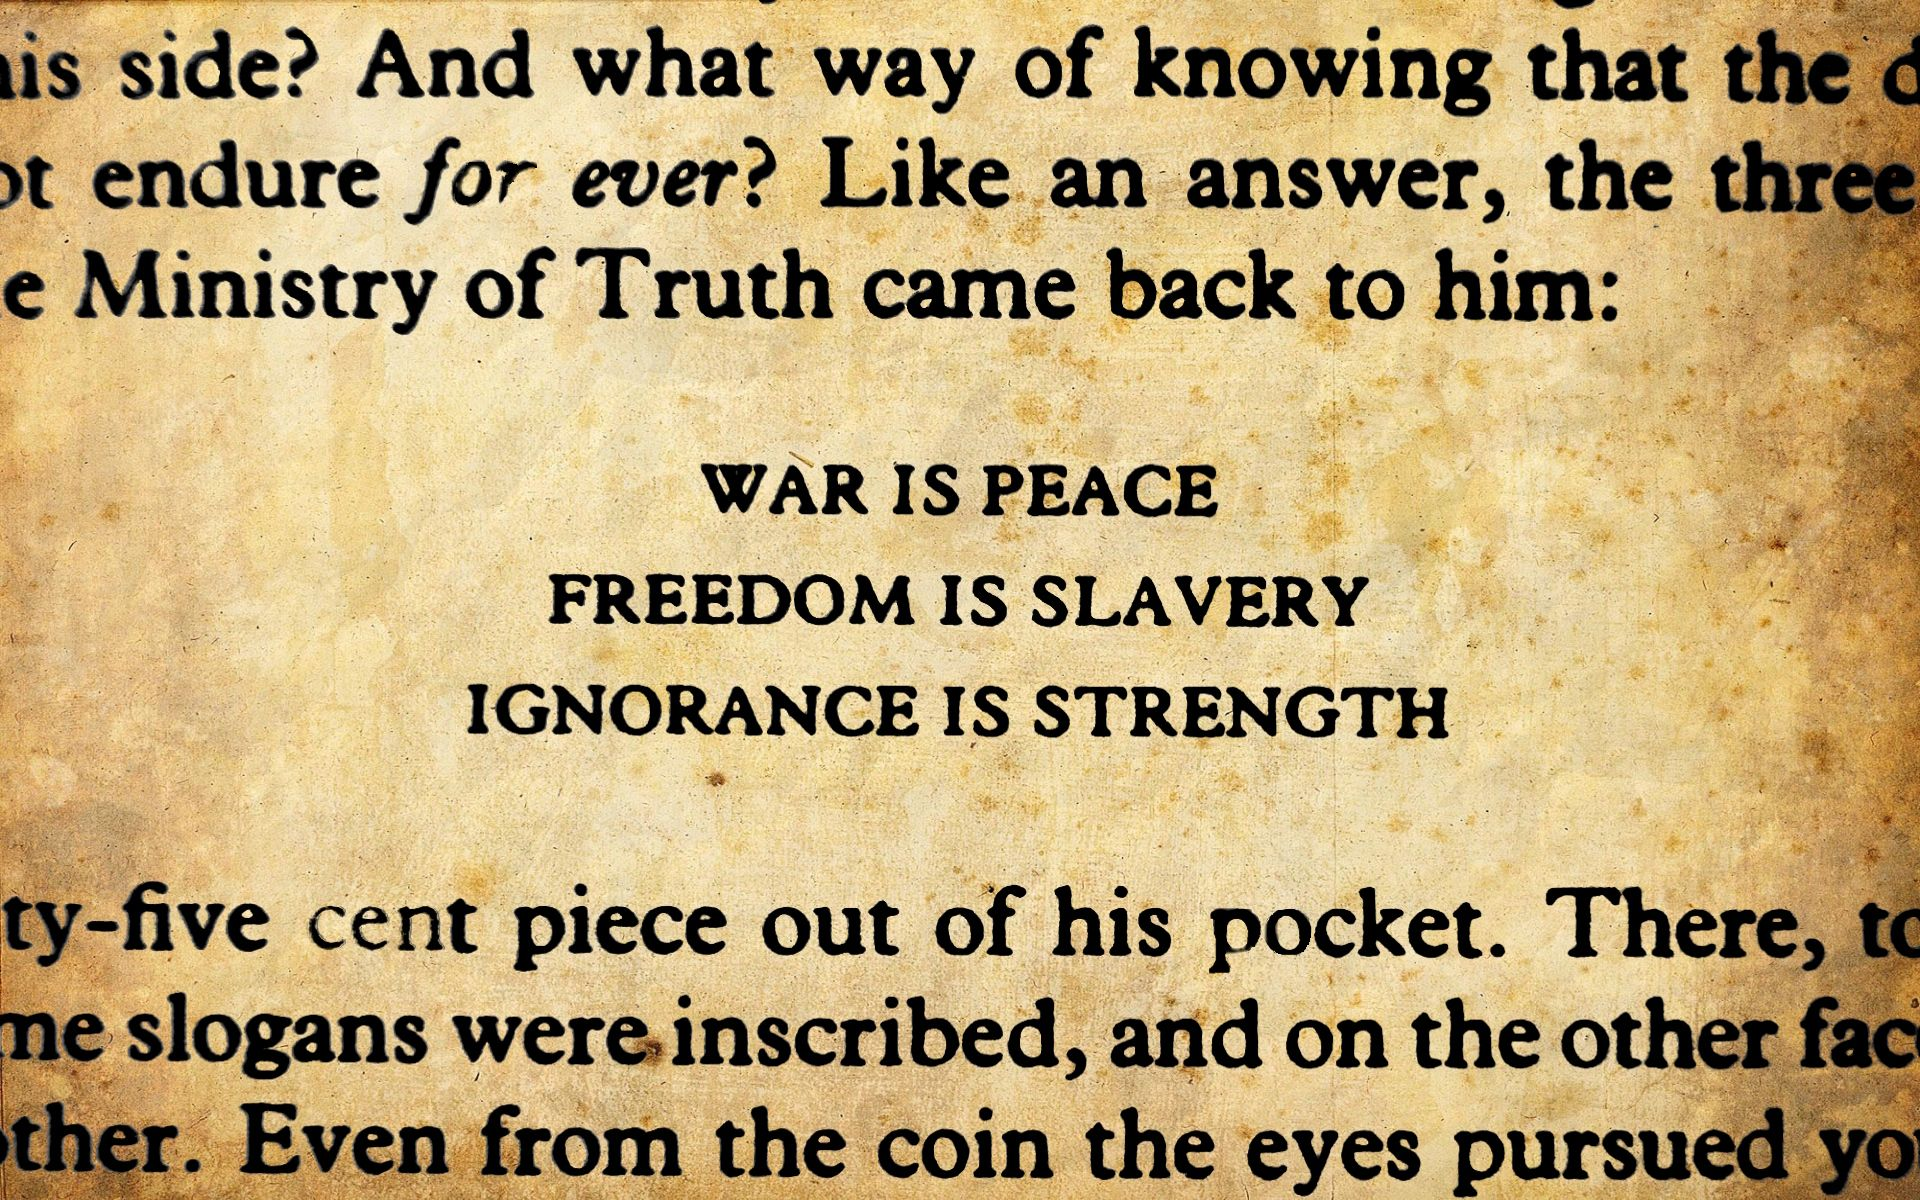 George Orwell 1984 Quotes A Quote From 1984George Orwell  Books Worth Reading